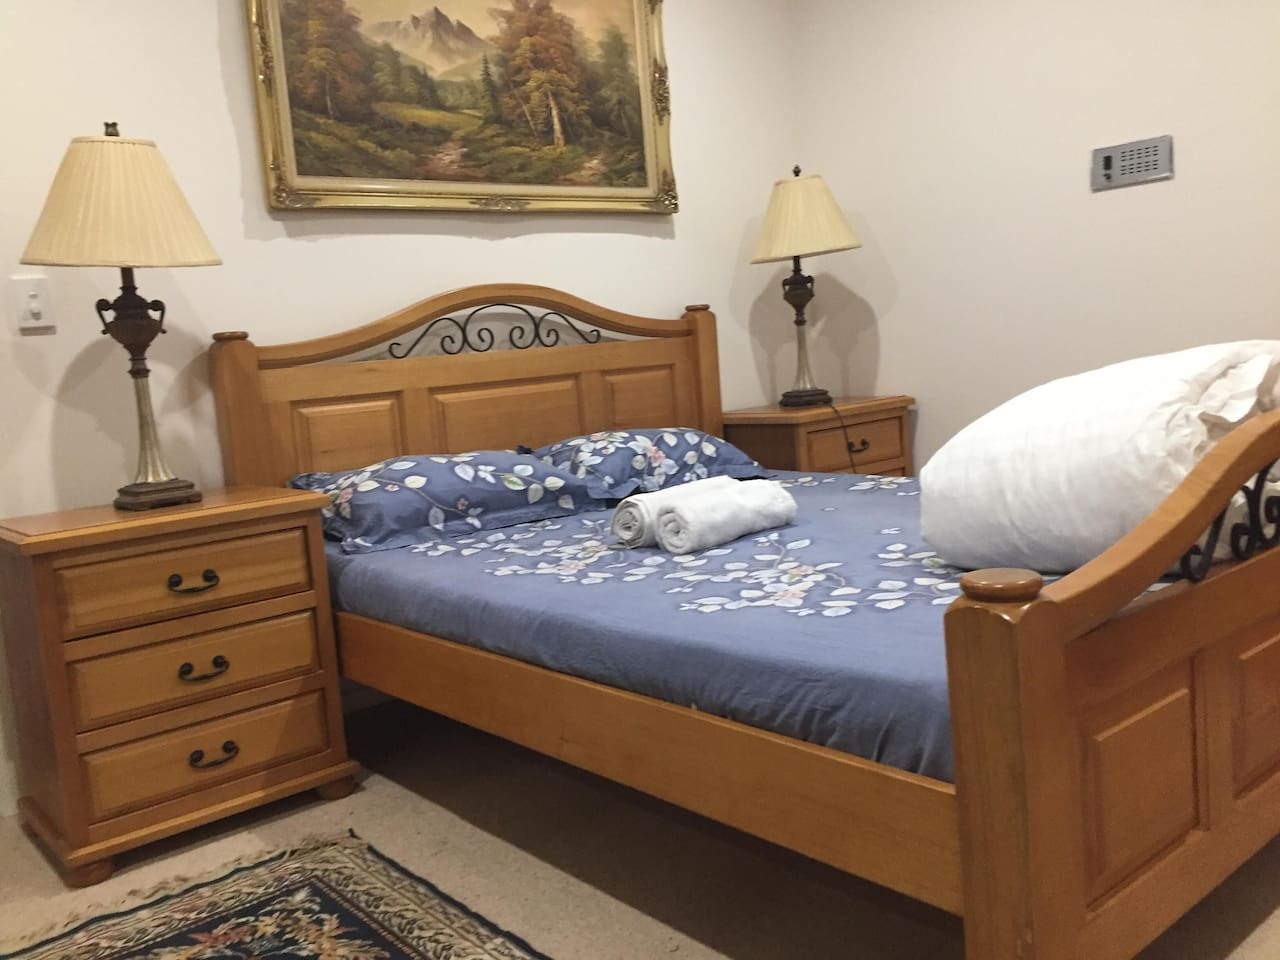 Queen bedroom suite facing a huge window, plenty of sunlight, fresh air if you decide to pull curtains. Clean and quality beddings, bedside lamps for a bit of mystery or if decide to meditate.